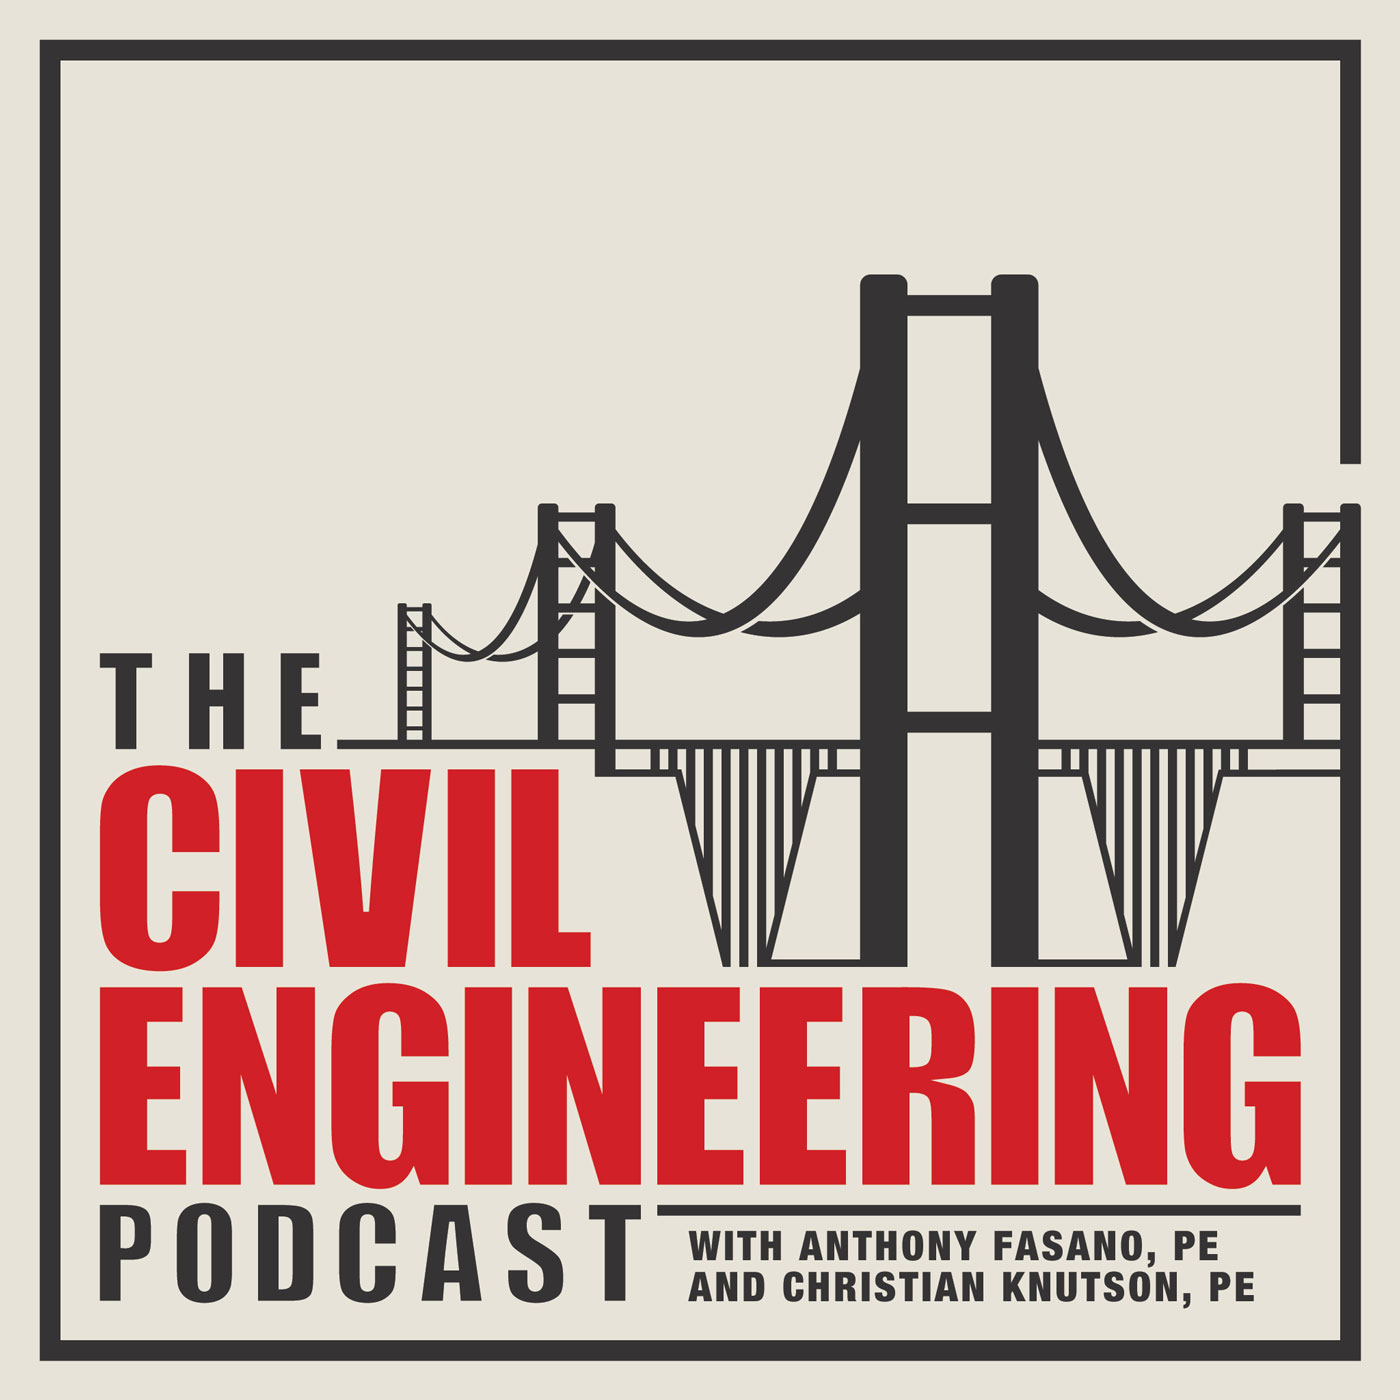 The Civil Engineering Podcast: Civil Engineering Career Advice | Civil  Engineering Careers | Civil Engineering Design by Anthony Fasano, PE &  Christian ...